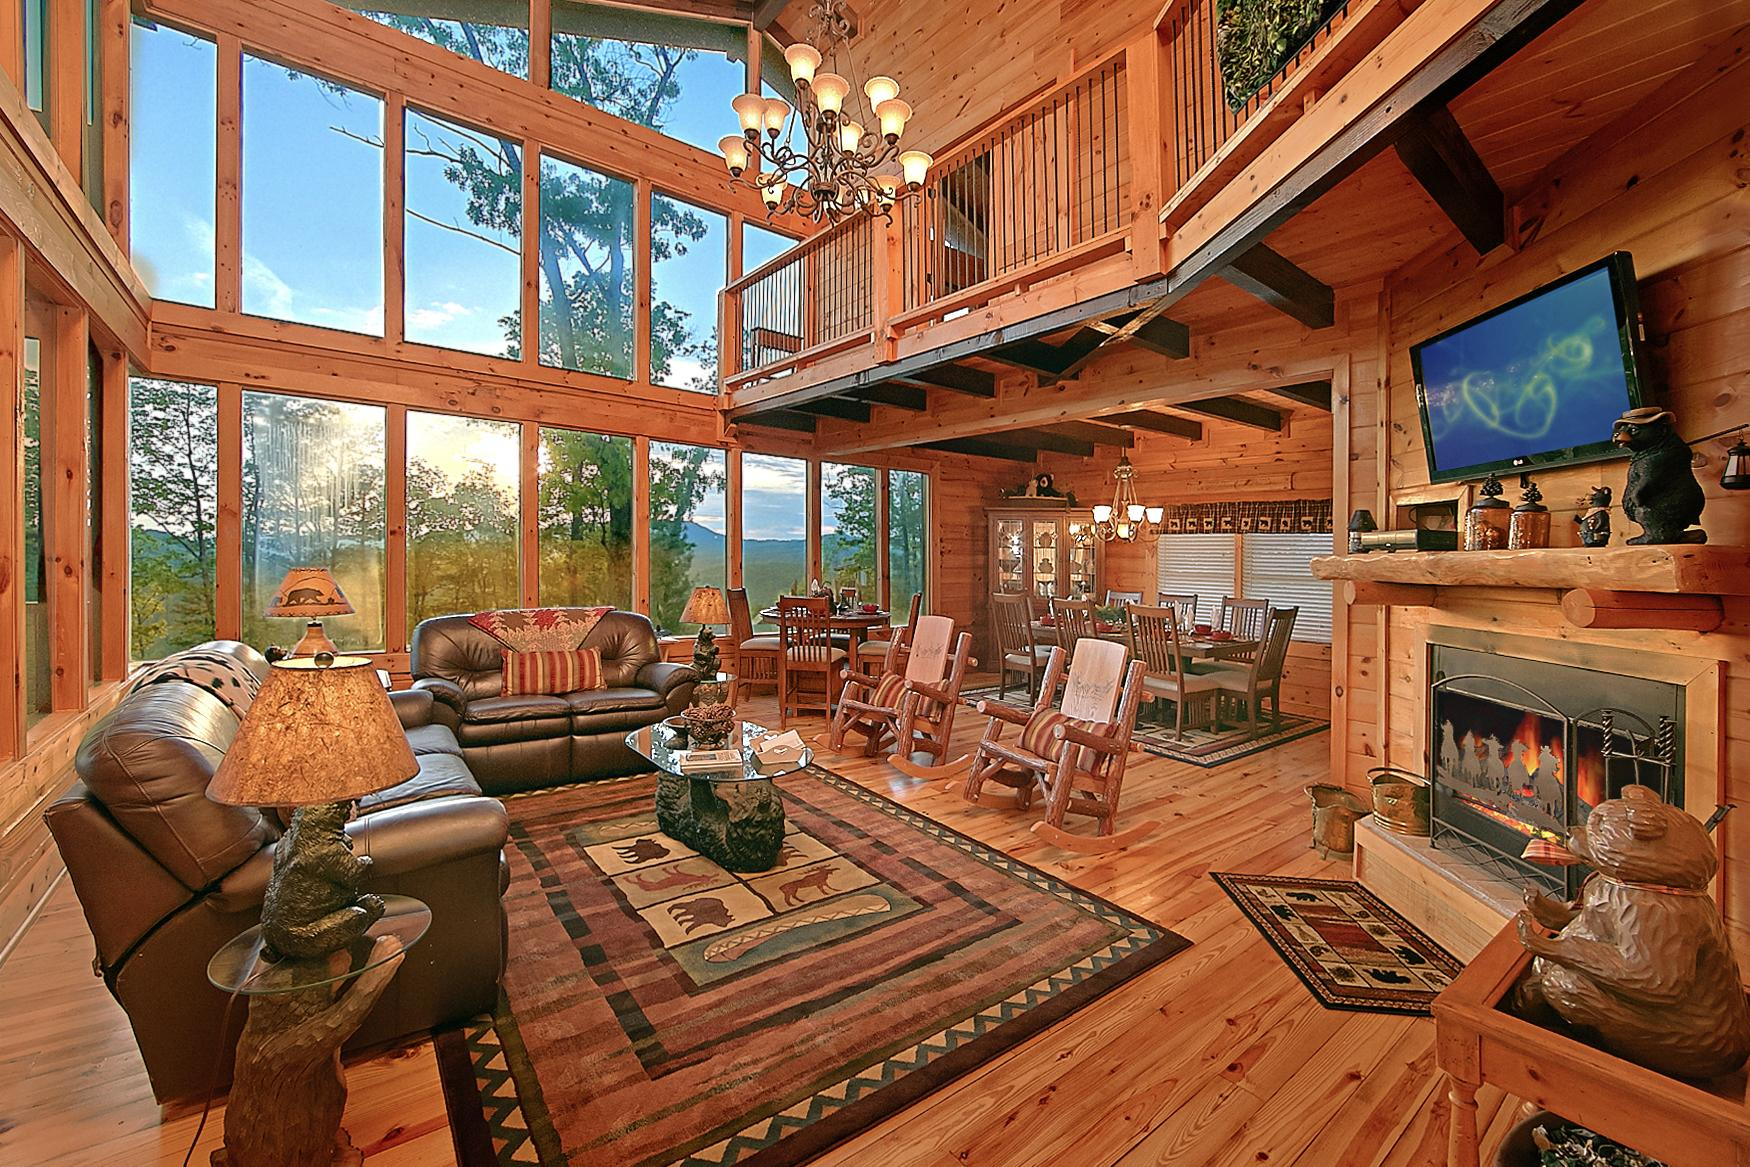 tennessee pools pool smoky cabin rentals private with cabins access luxury indoor gatlinburg als tn inside cheap mountain